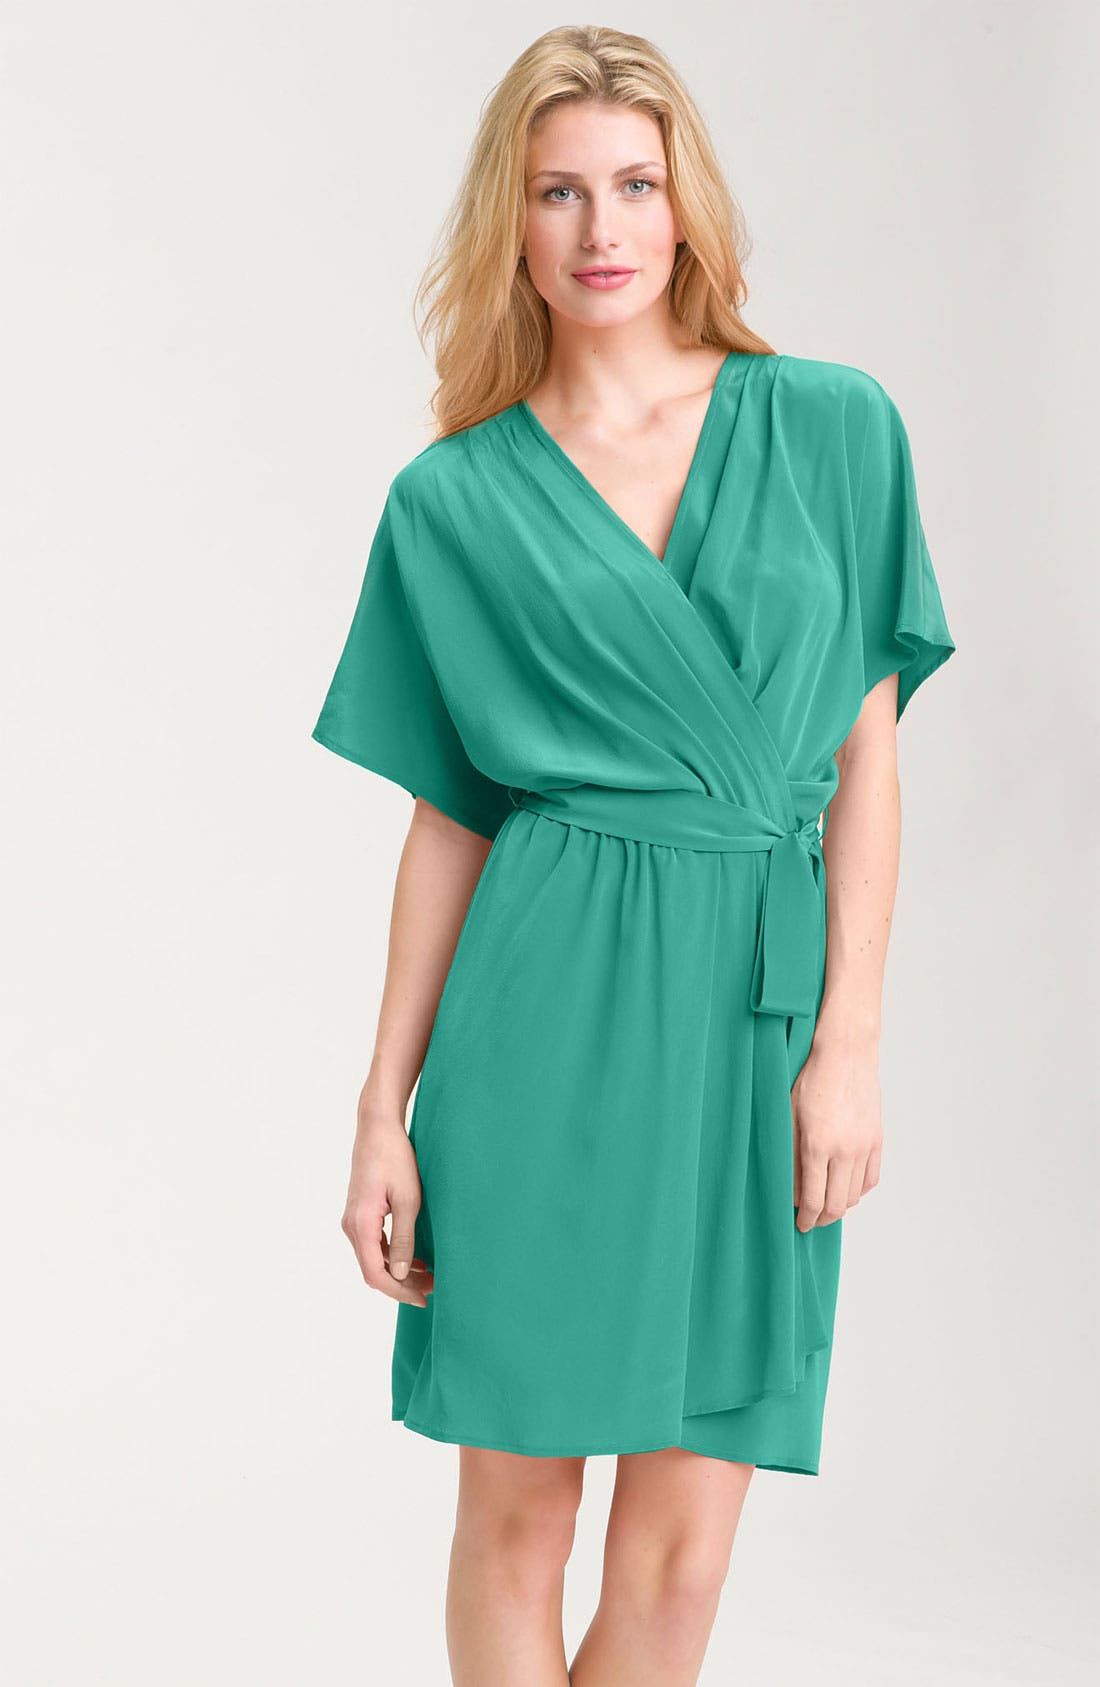 Alternate Image 1 Selected - Donna Morgan Faux Wrap Crêpe de Chine Dress (Petite)